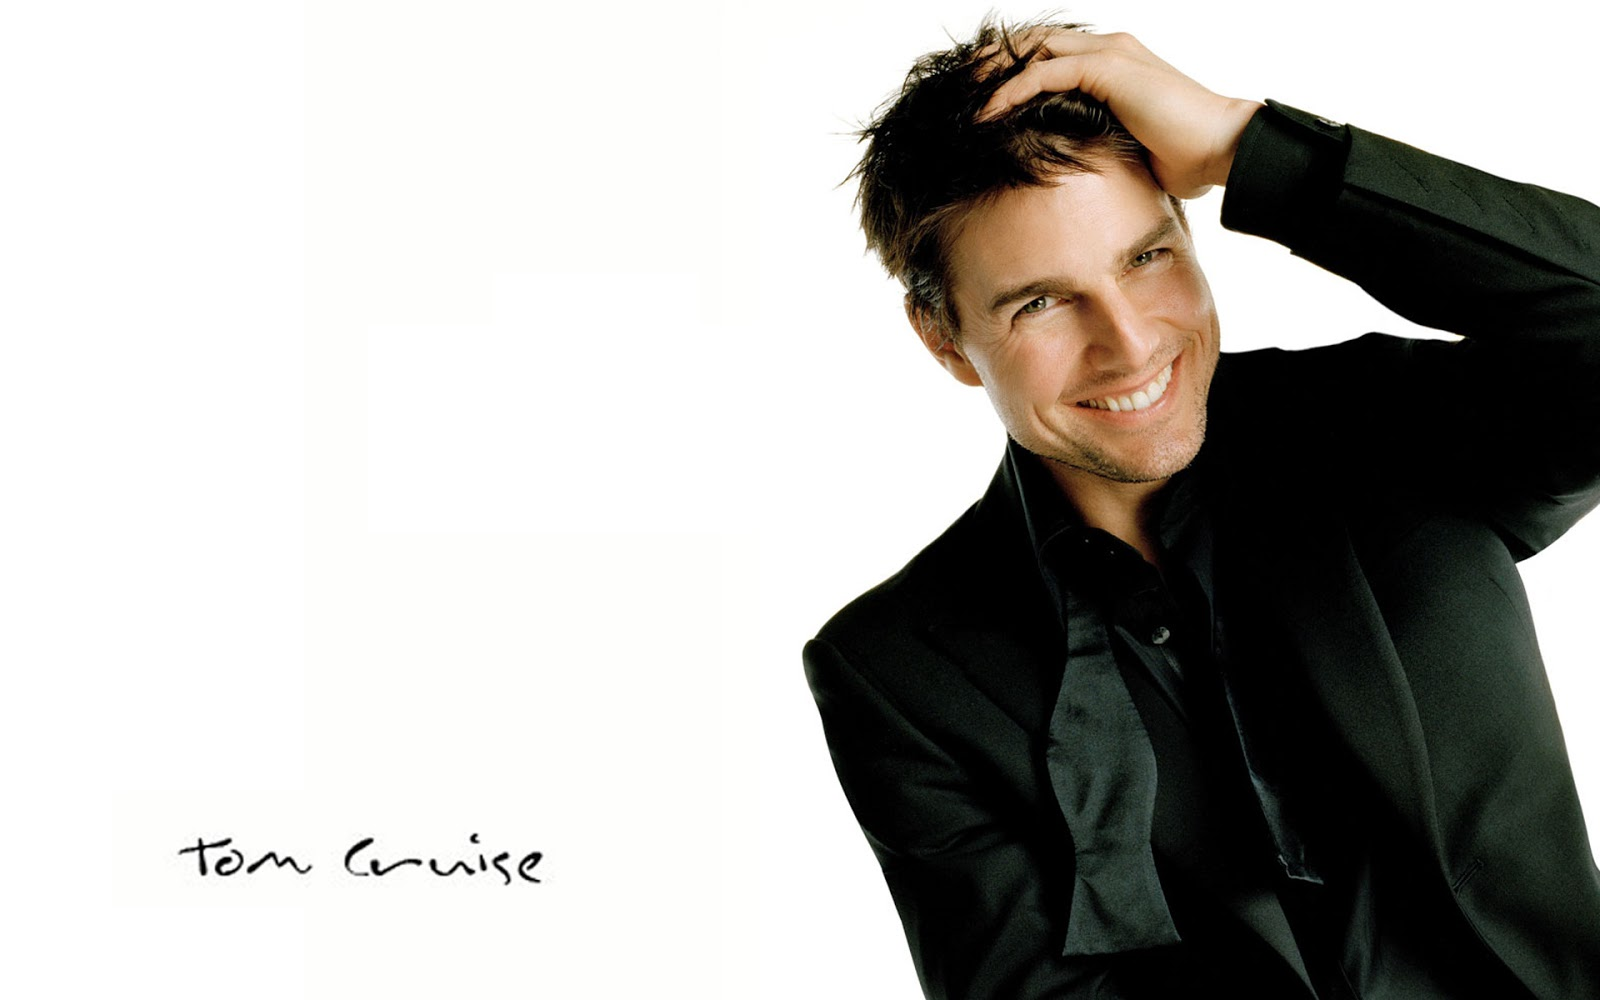 nude porn gallery Tom Cruise New Cool HD Wallpaper 2012 2013 1600x1000